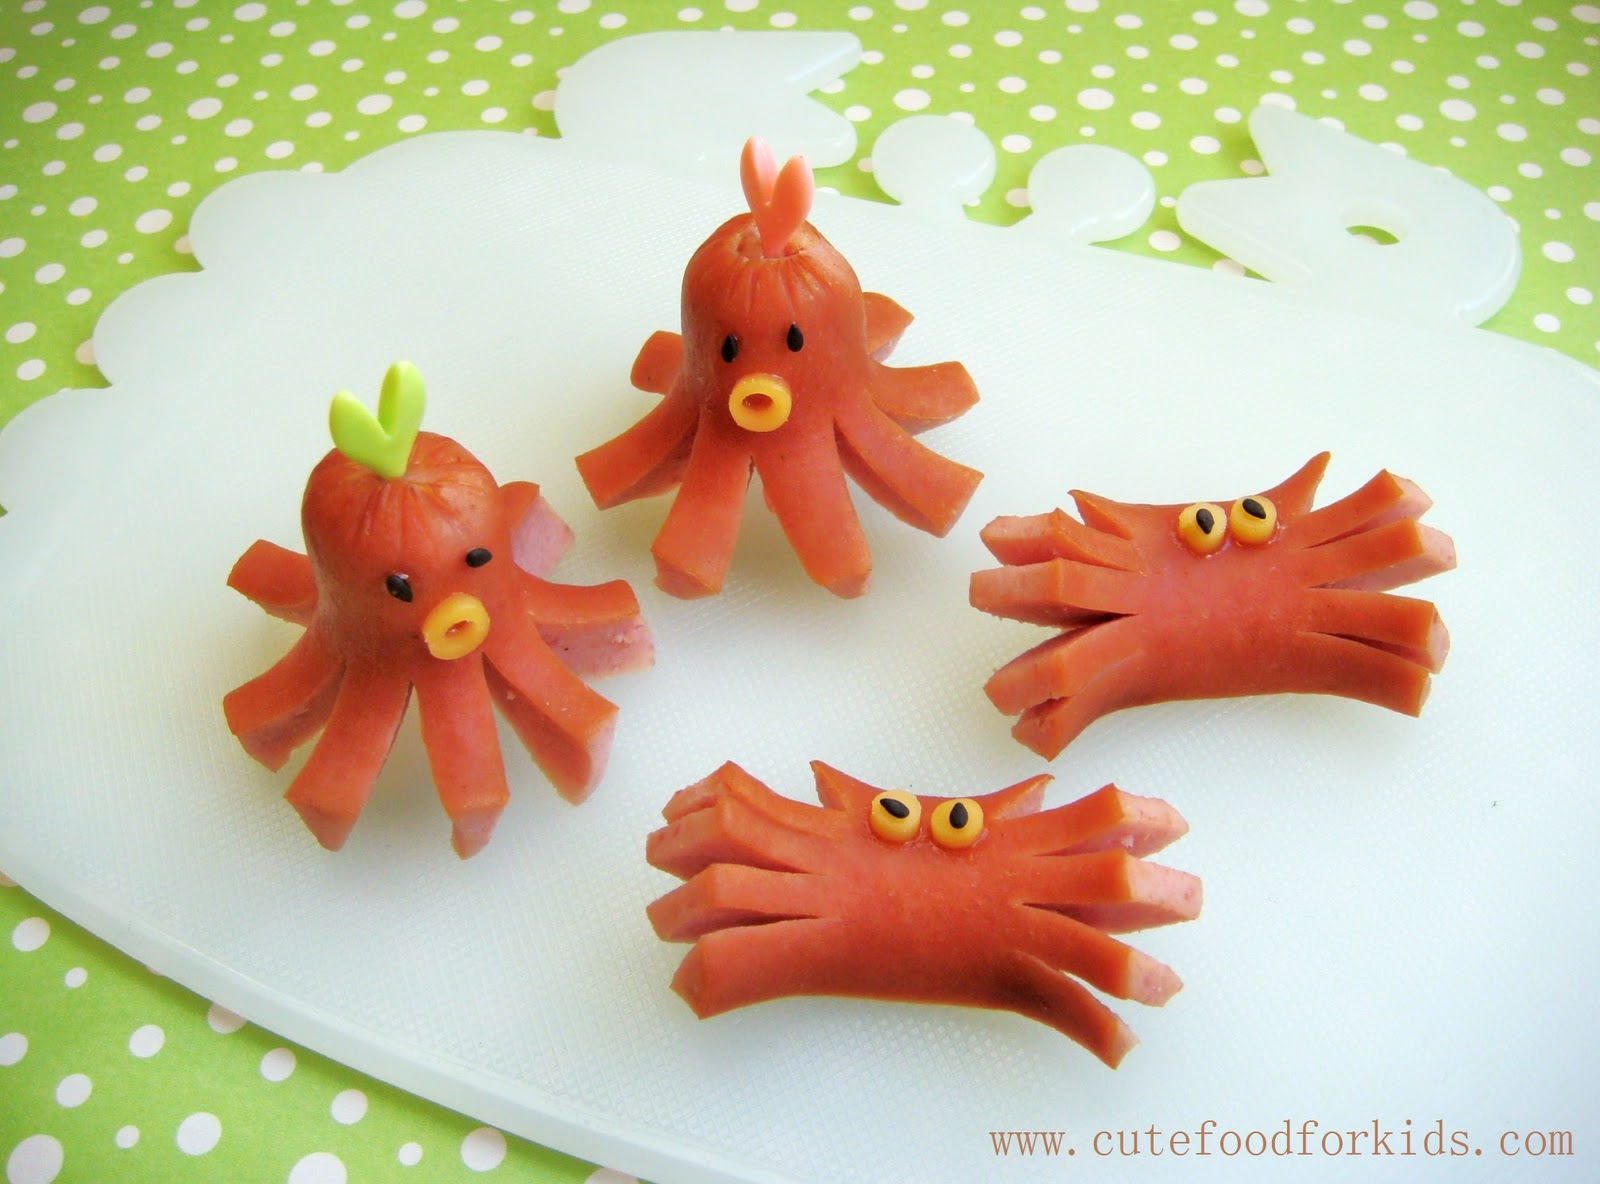 cute food for kids one wiener dog u003d 2 crabs 2 octopi